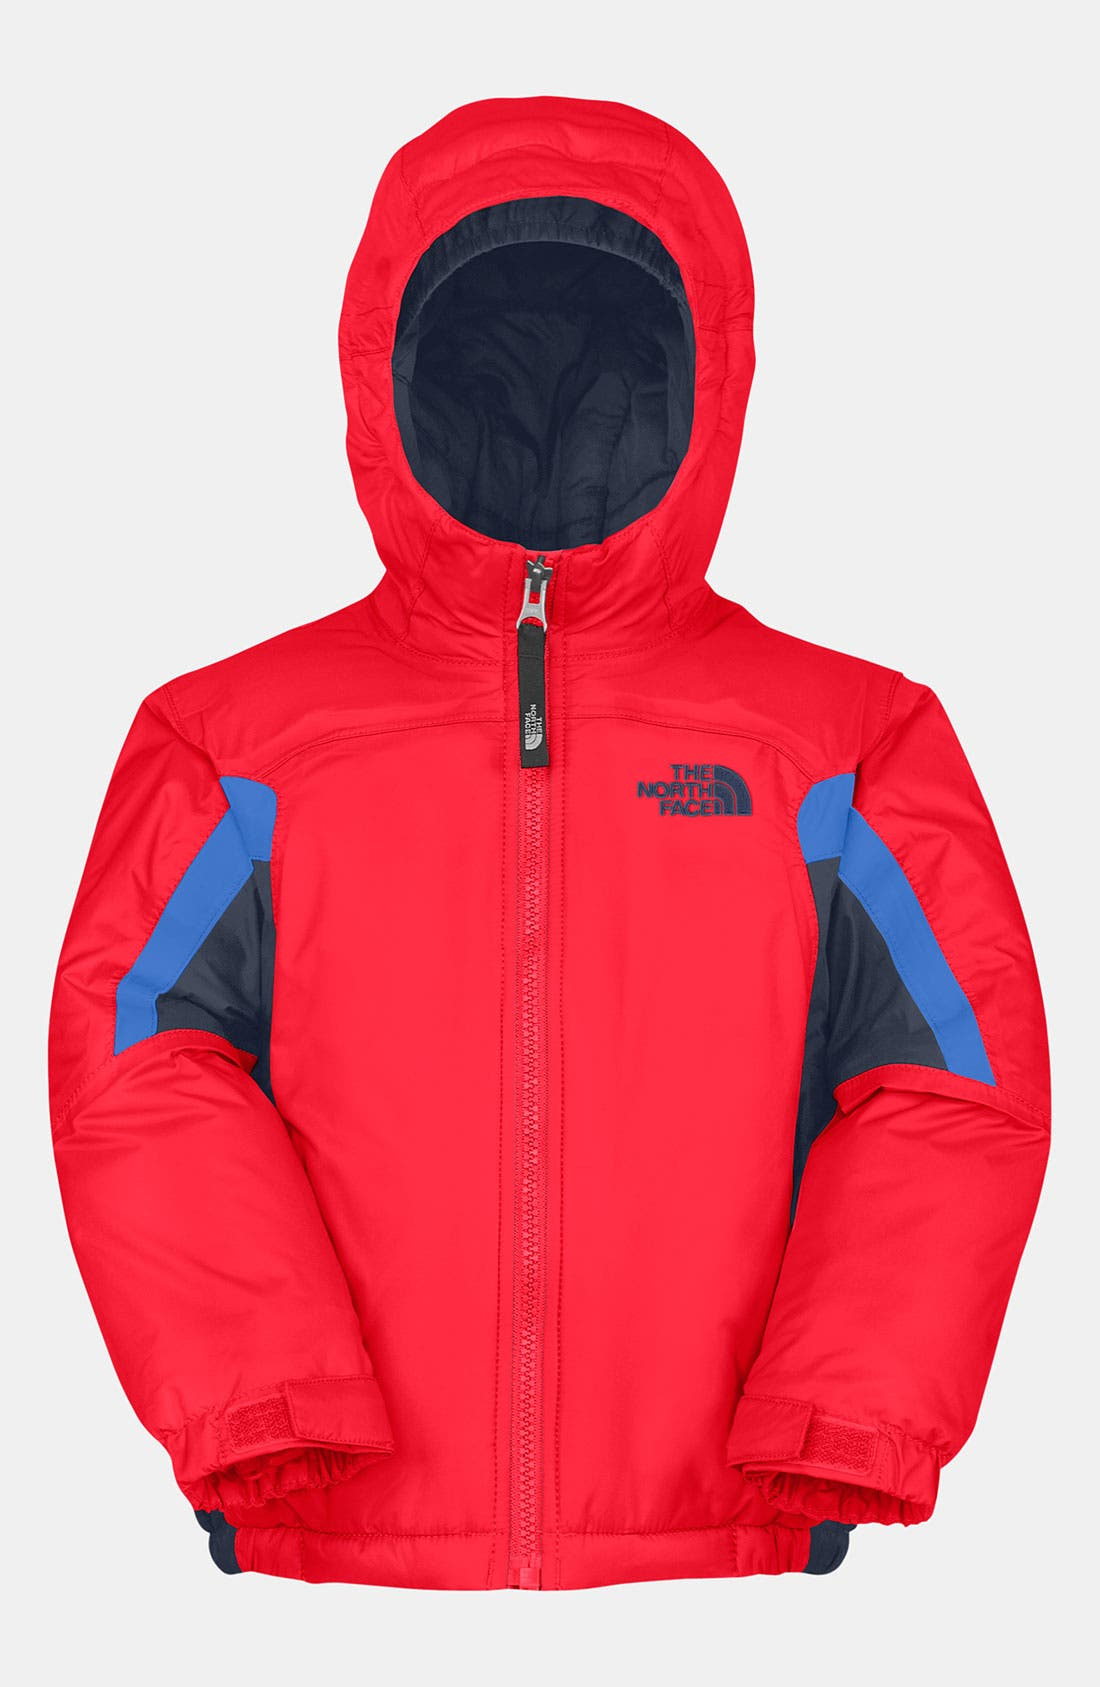 Main Image - The North Face 'Out of Bounds' Waterproof Jacket (Toddler)